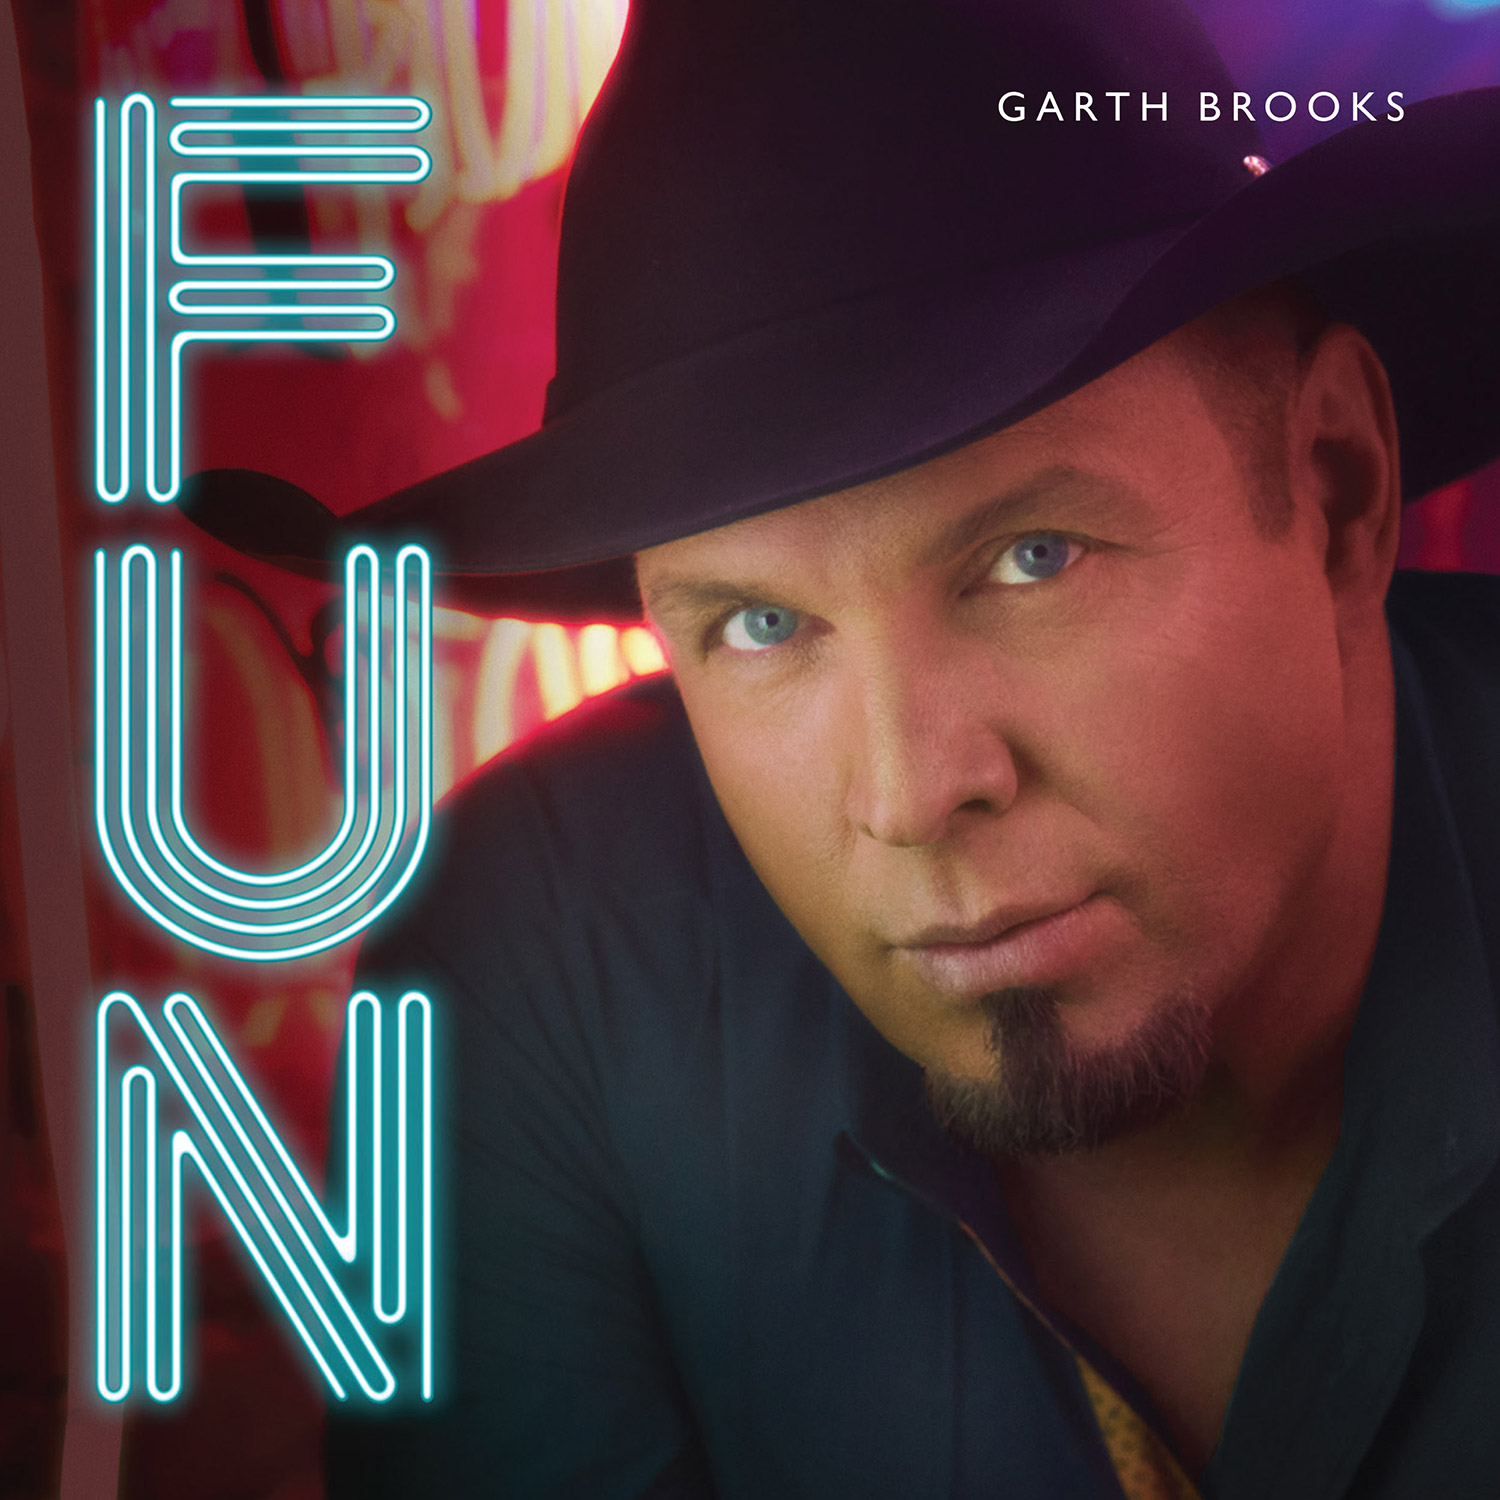 Garth Brooks' FUN